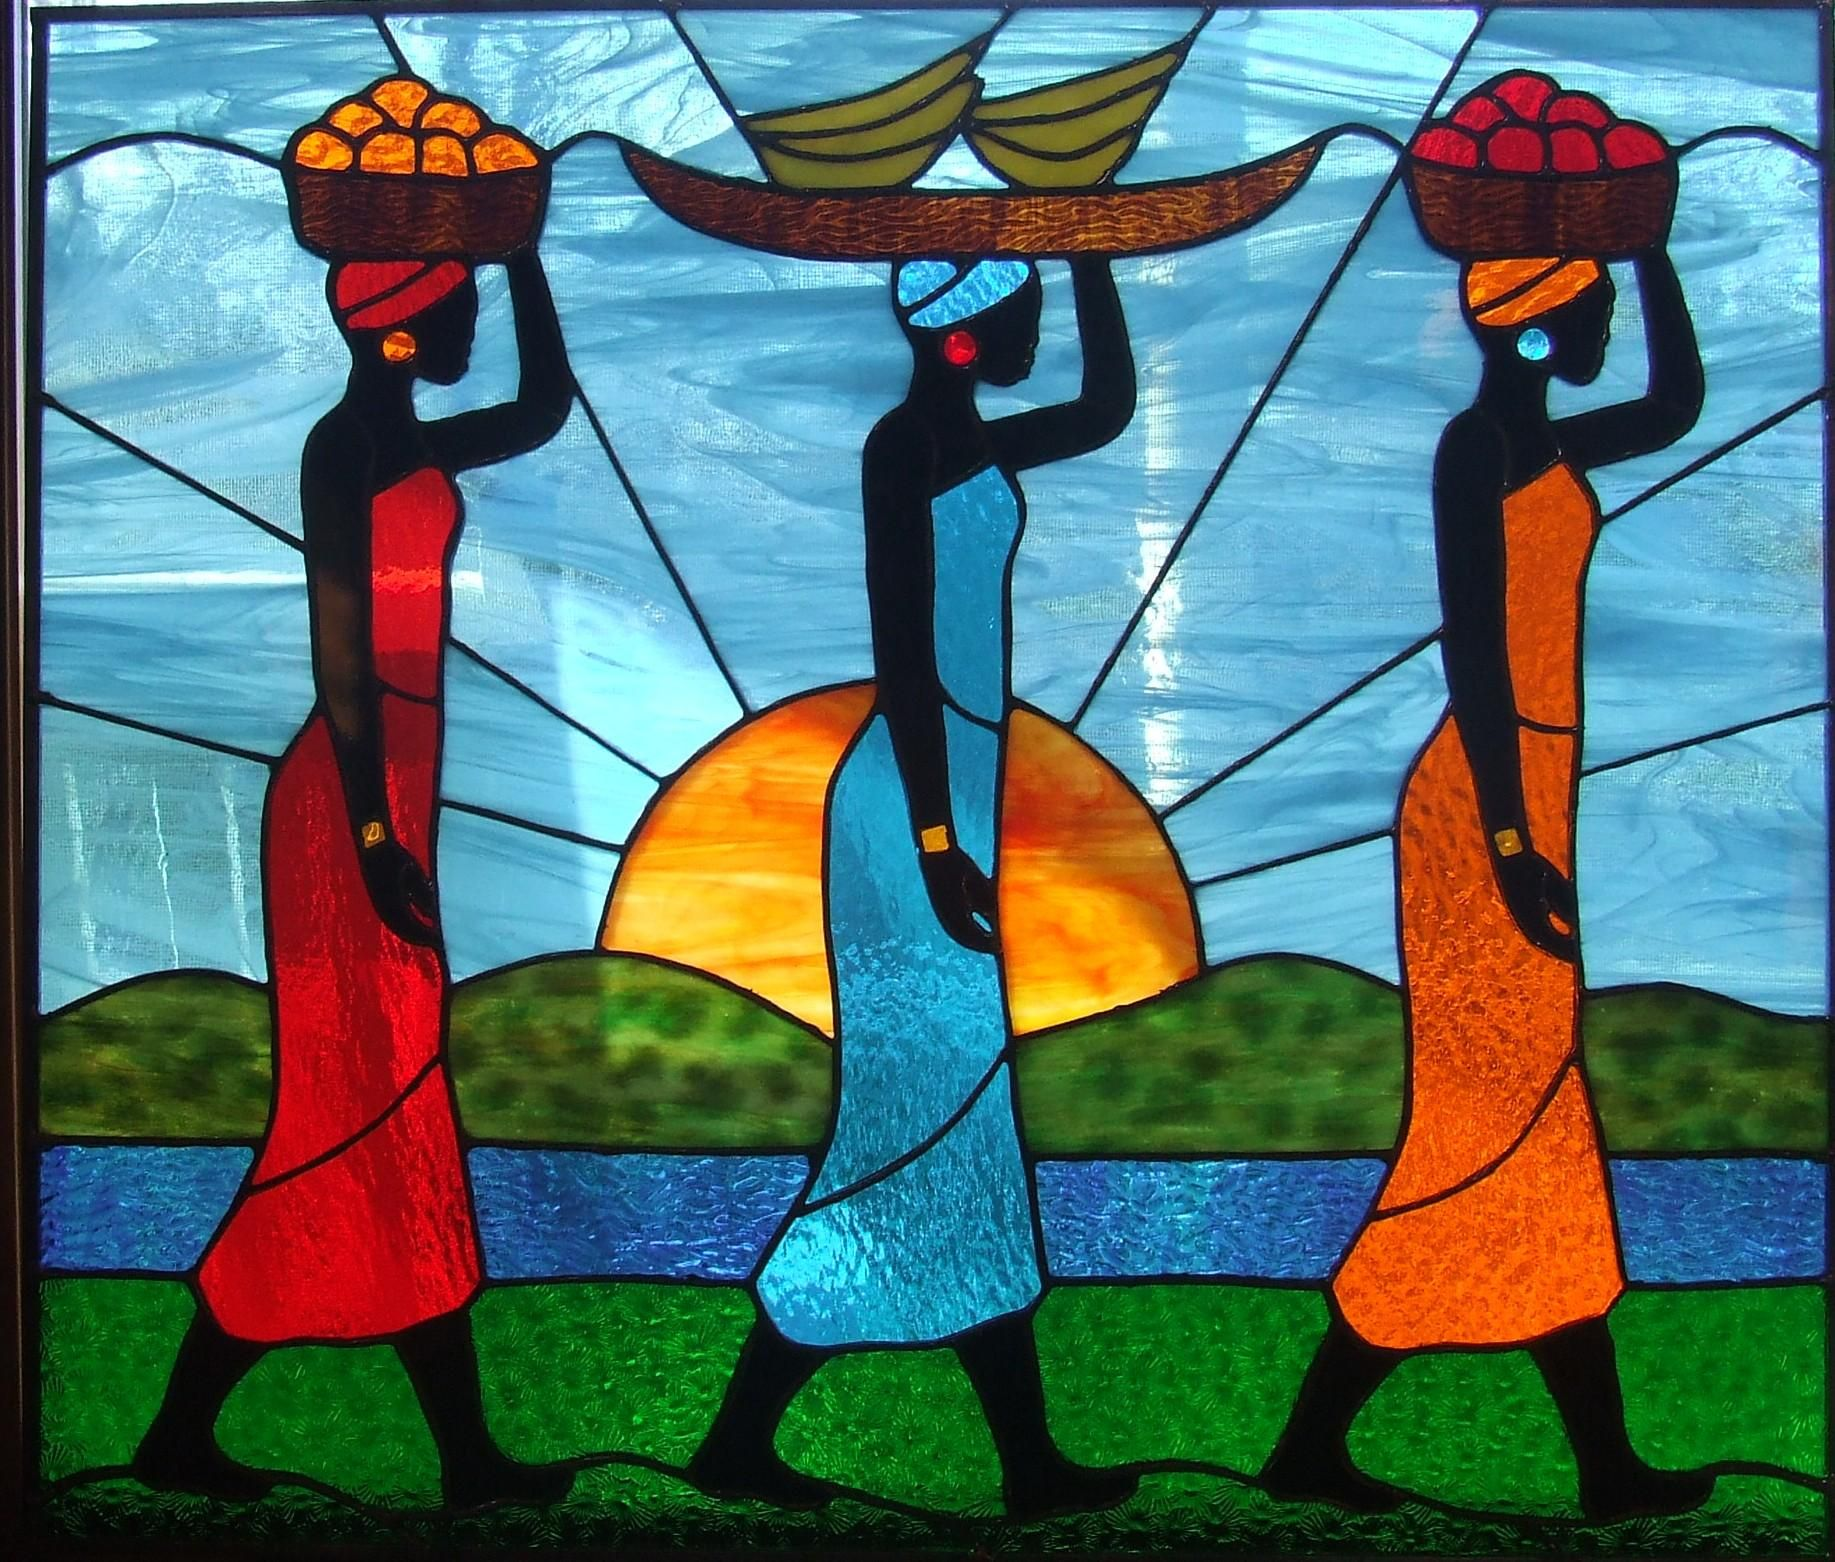 African Ladies Market - Delphi Artist Stained Glass Panels Painting